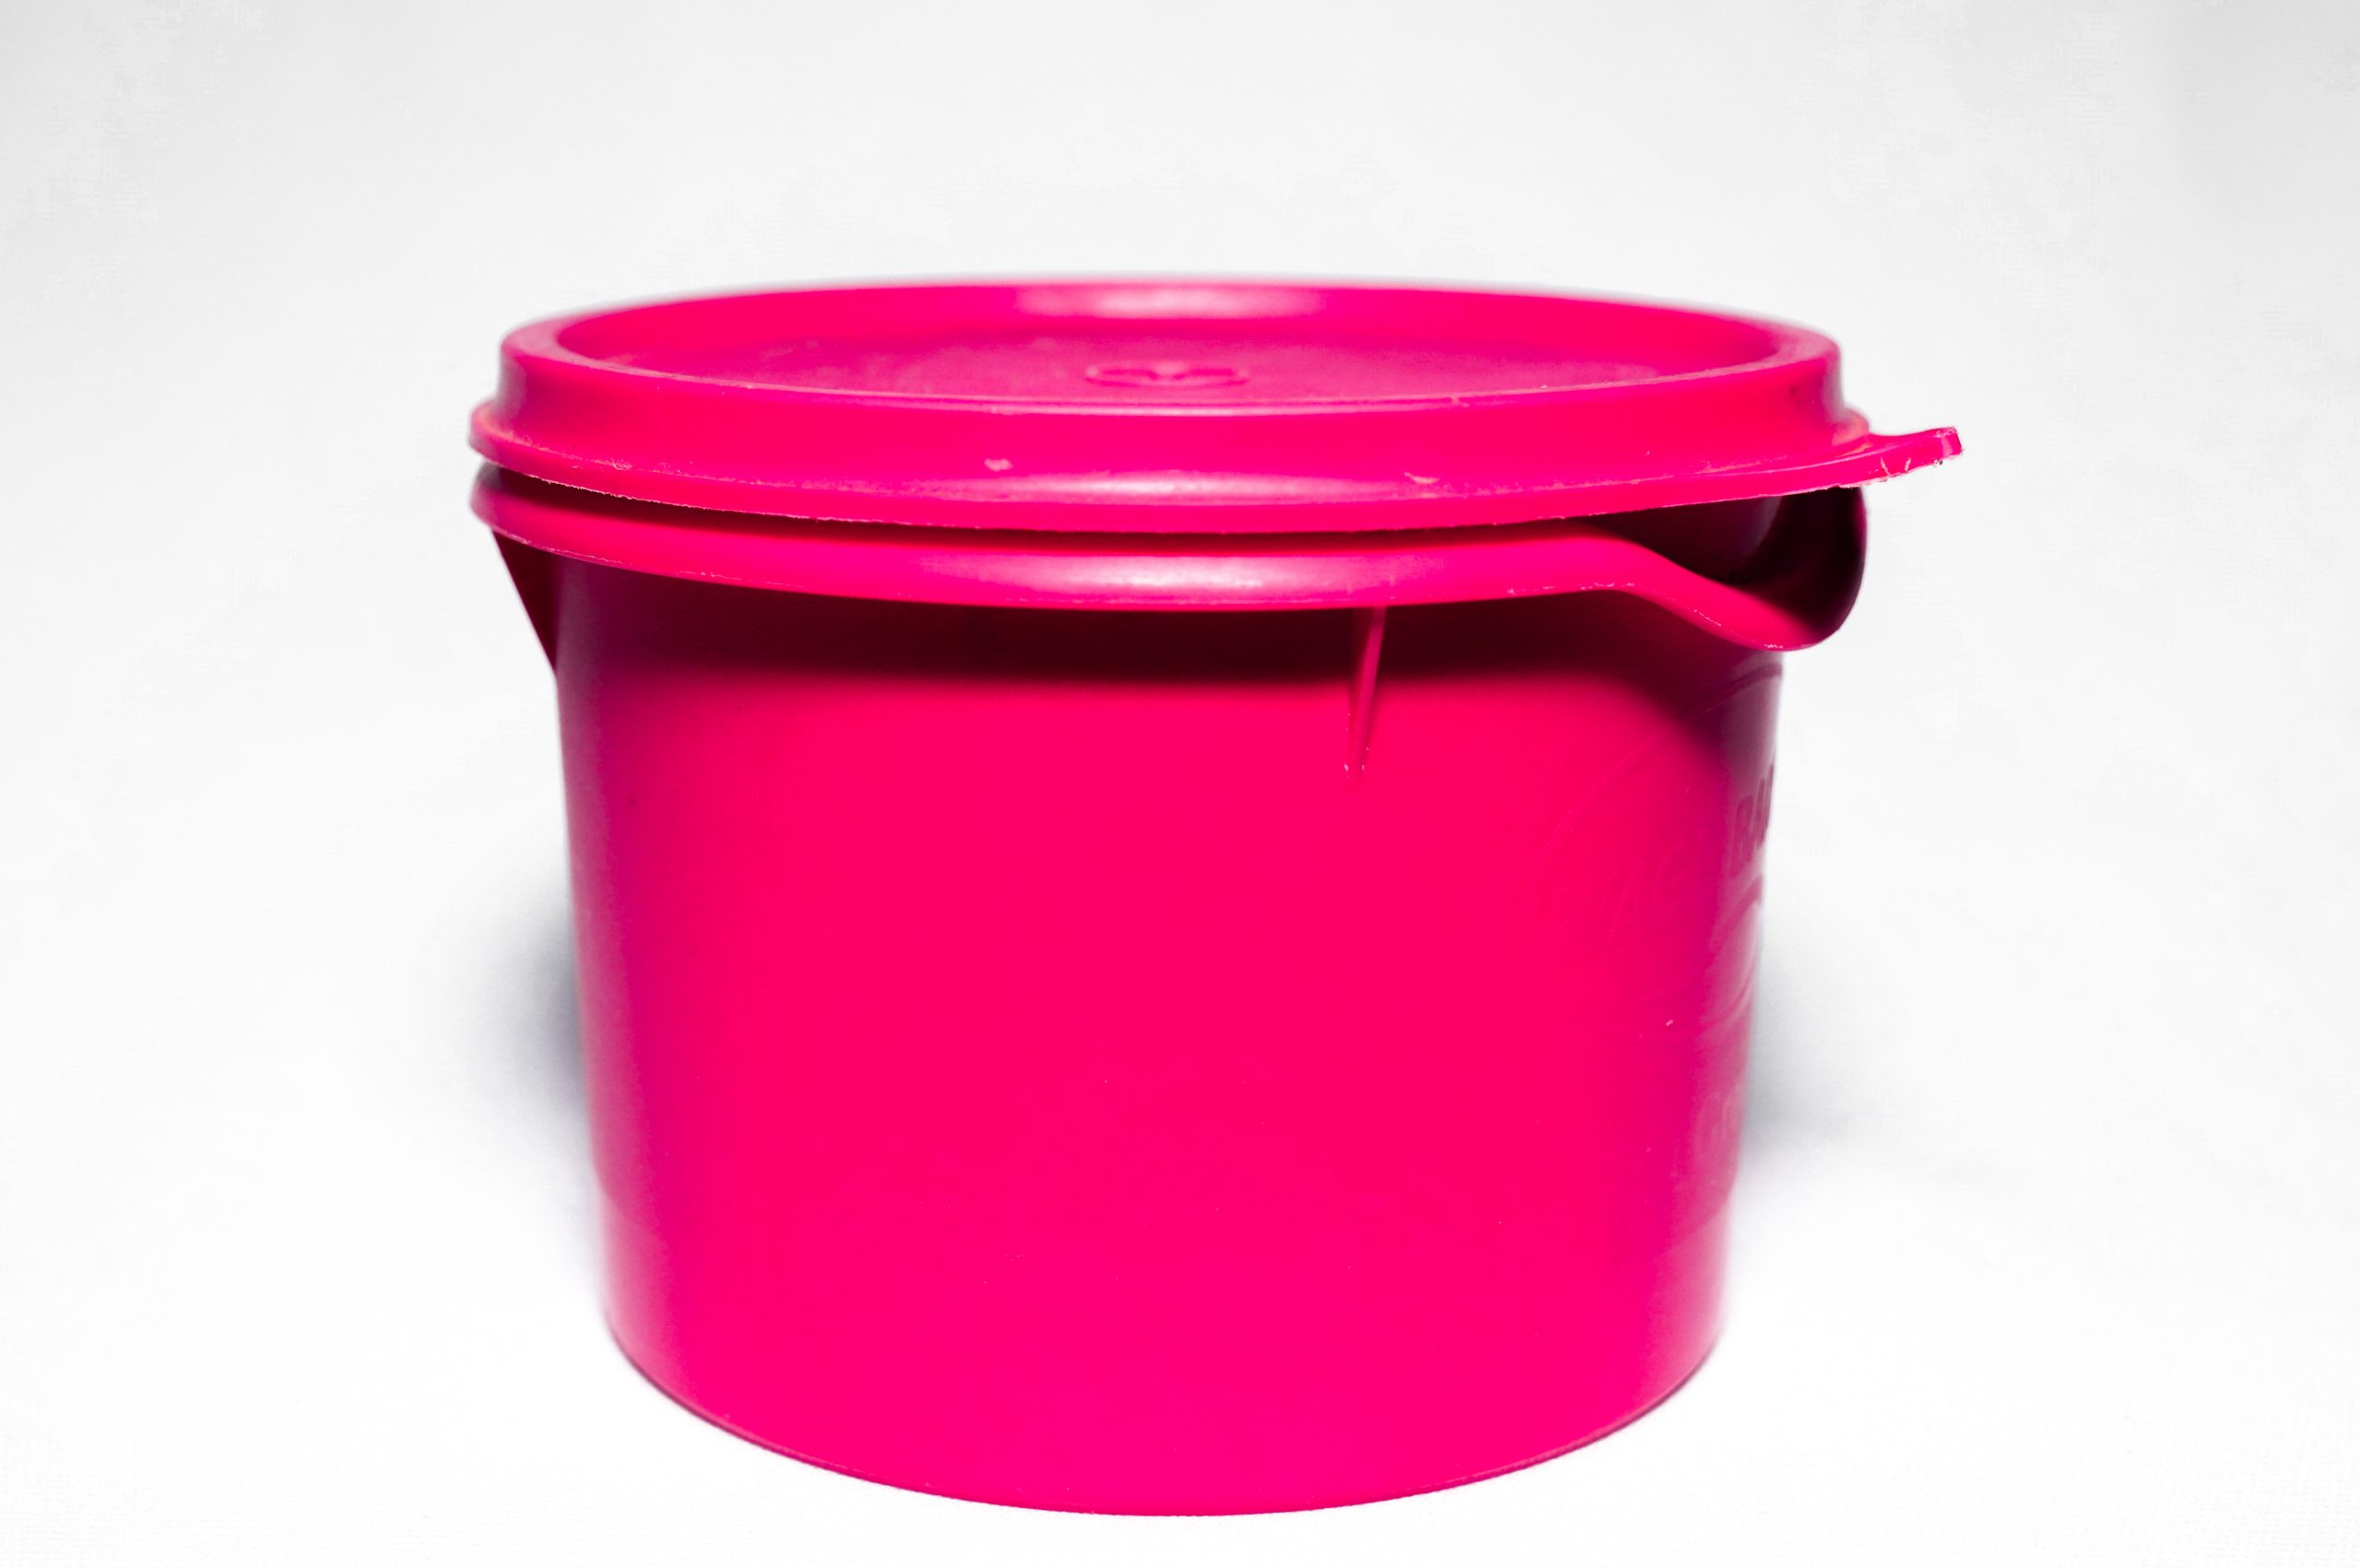 Pink box in white background